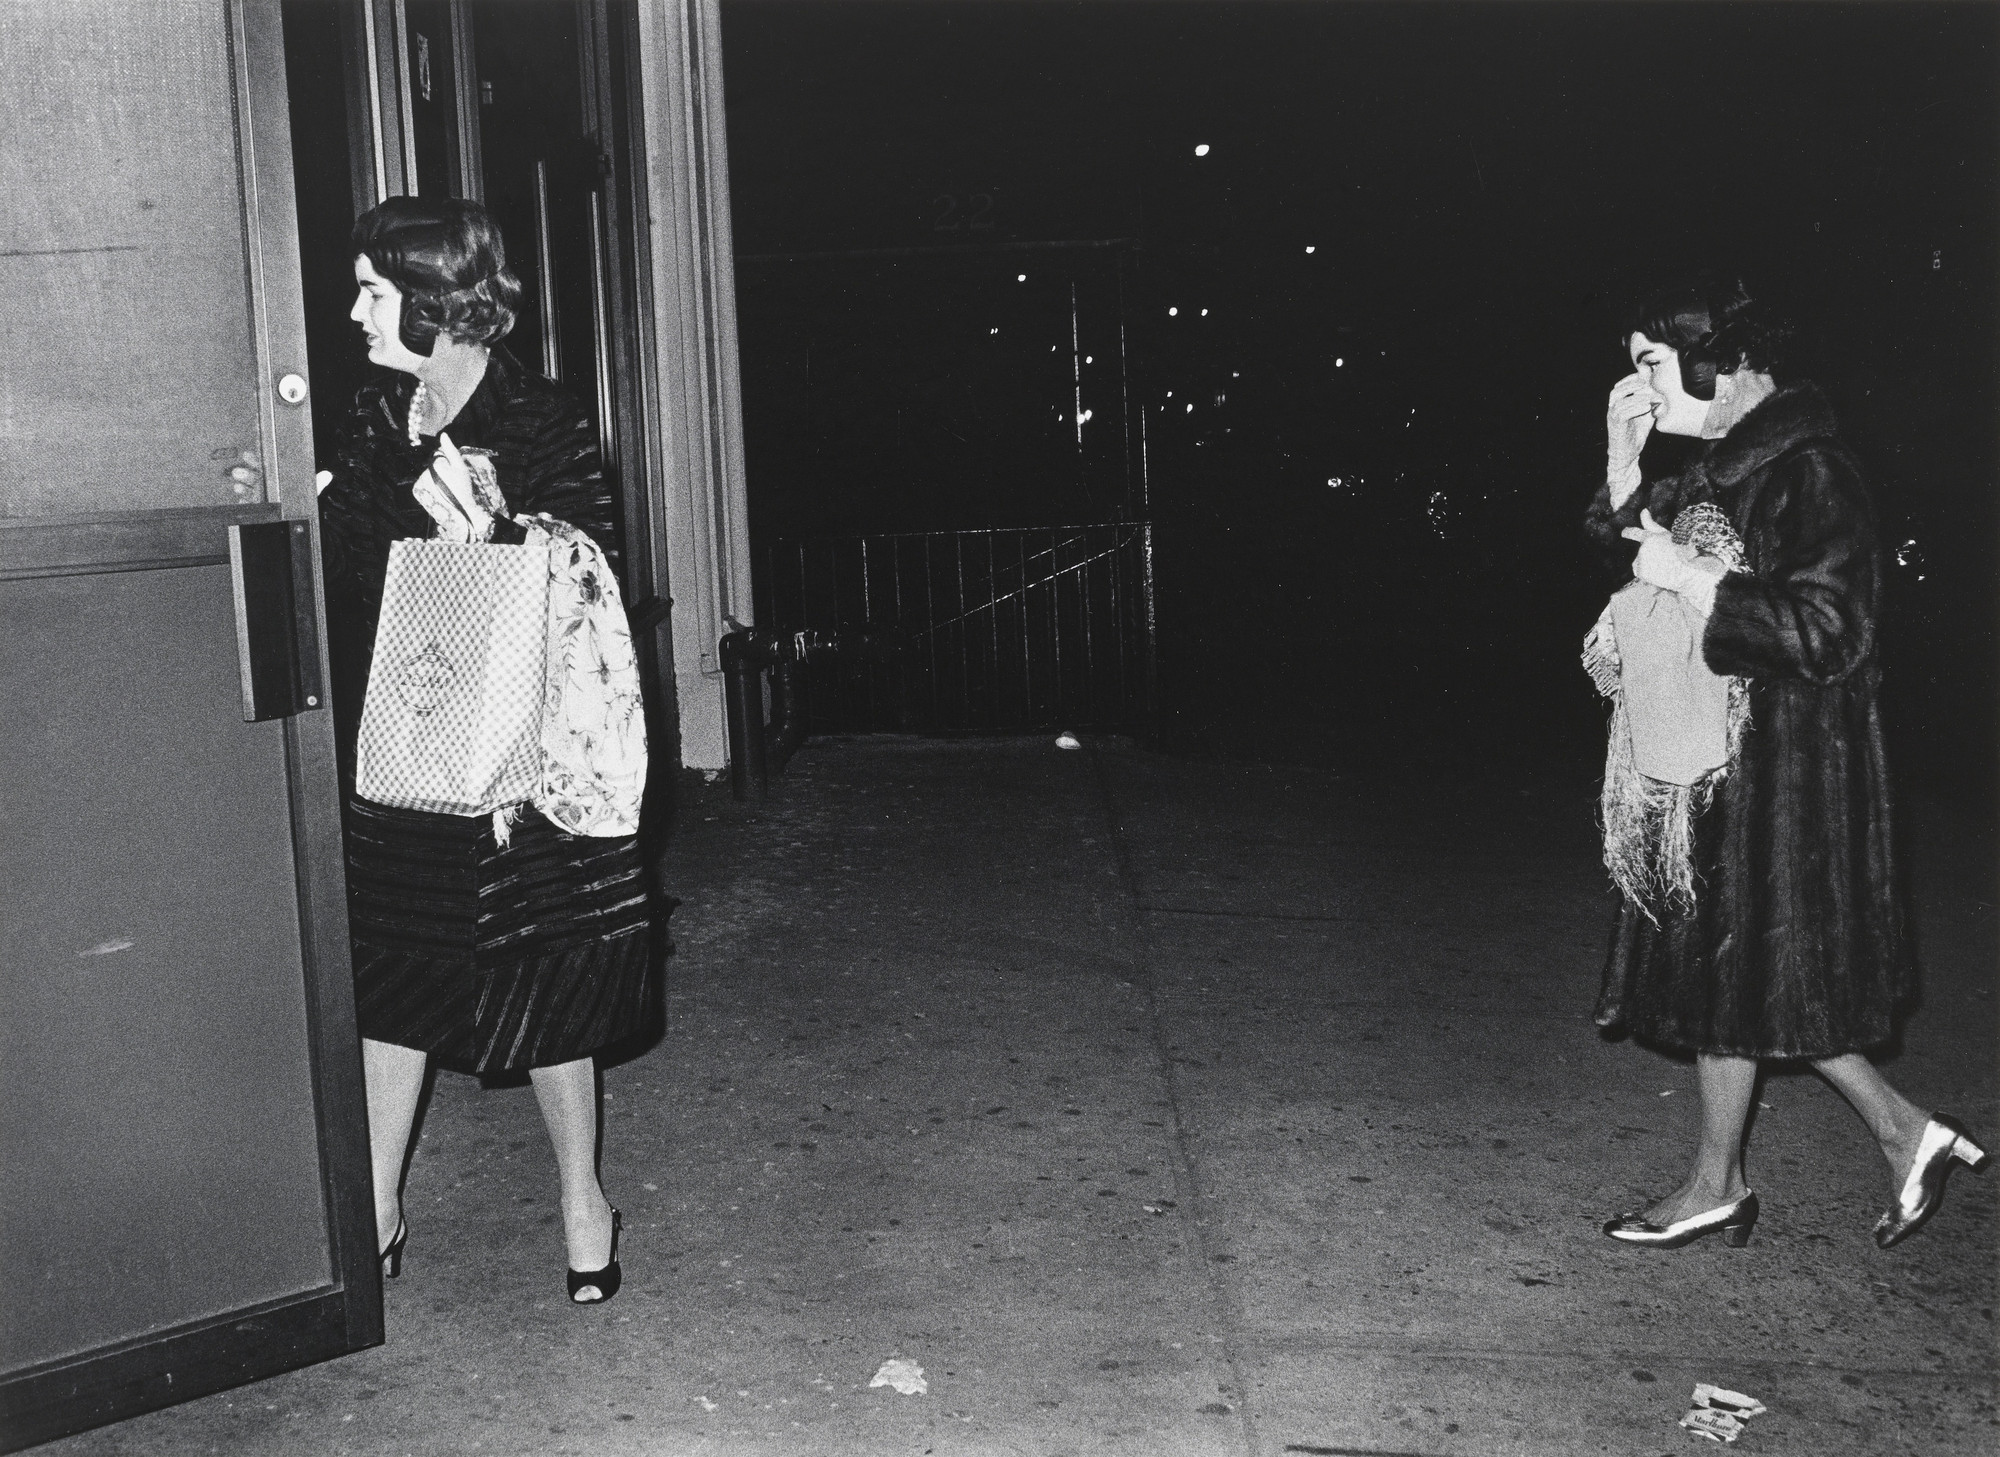 Ikko (Ikko Narahara). Two Ladies with Identical Jackie Kennedy Masks, New York. 1970